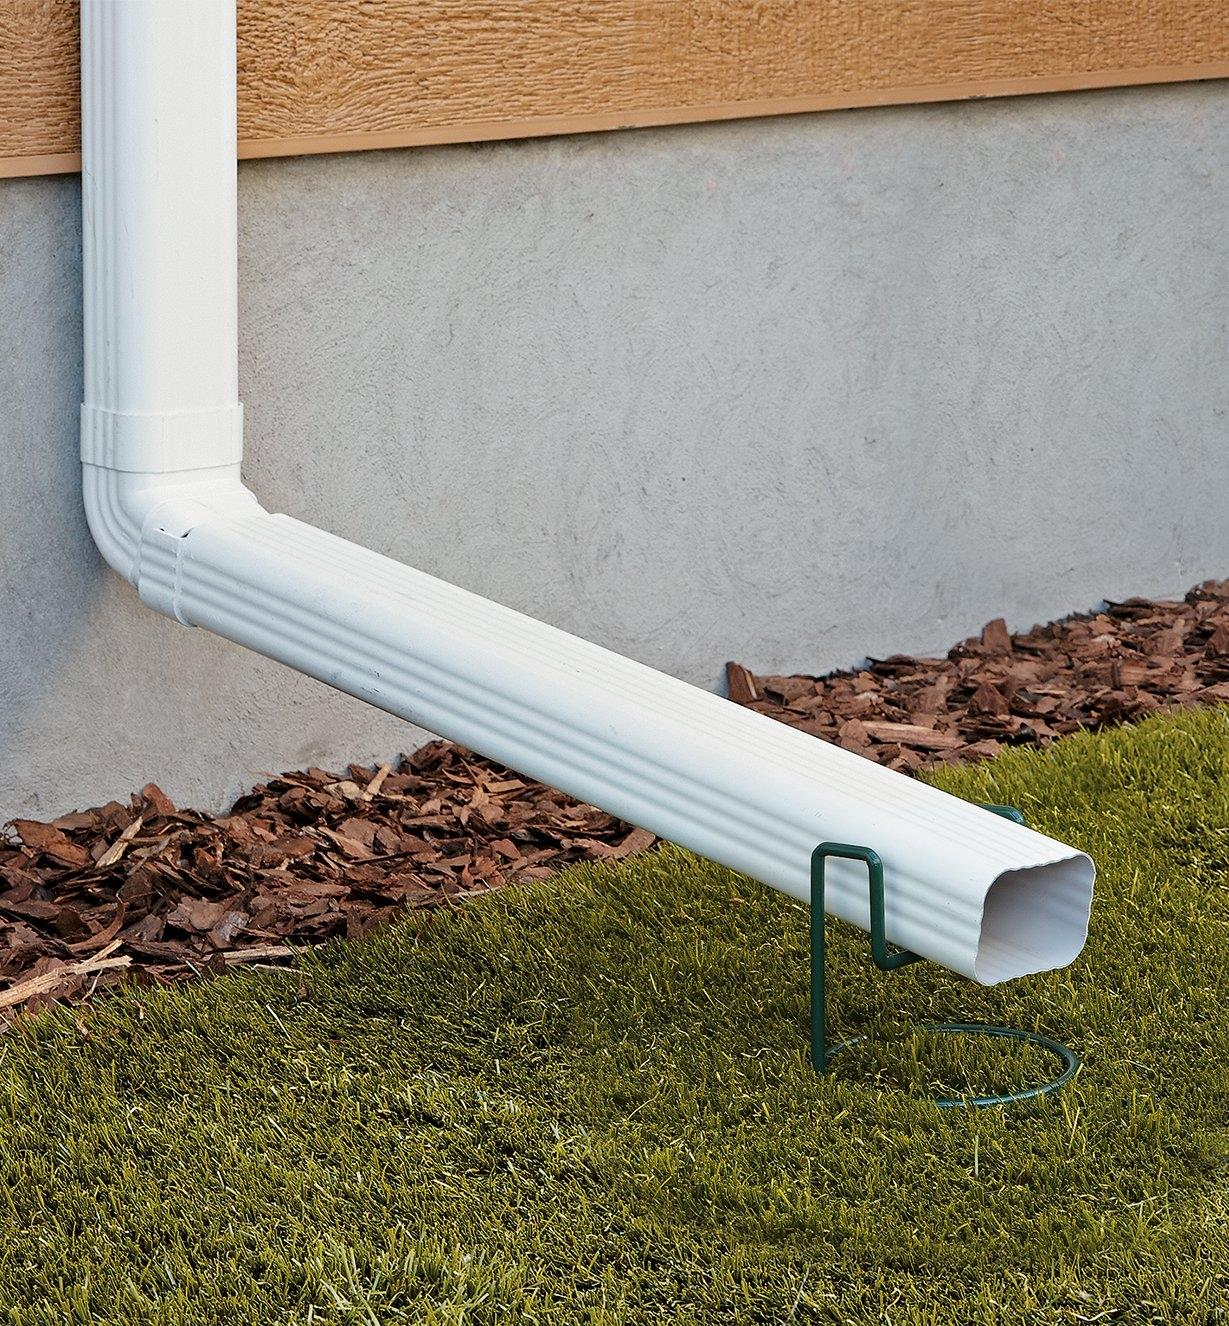 Lee Valley Downspout Support holding up a downspout